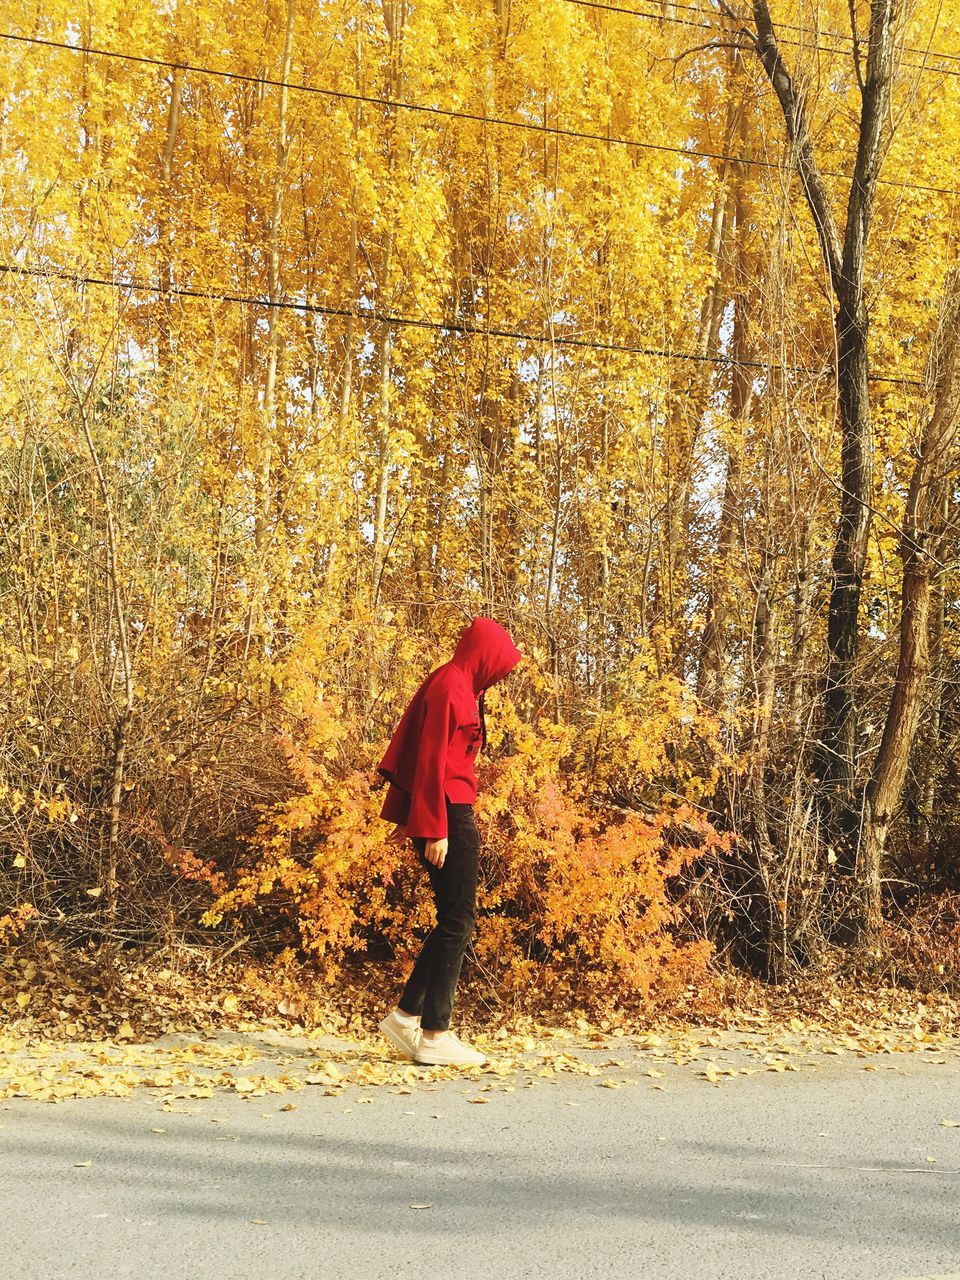 autumn, tree, full length, one person, real people, red, leaf, outdoors, change, day, nature, standing, lifestyles, forest, people